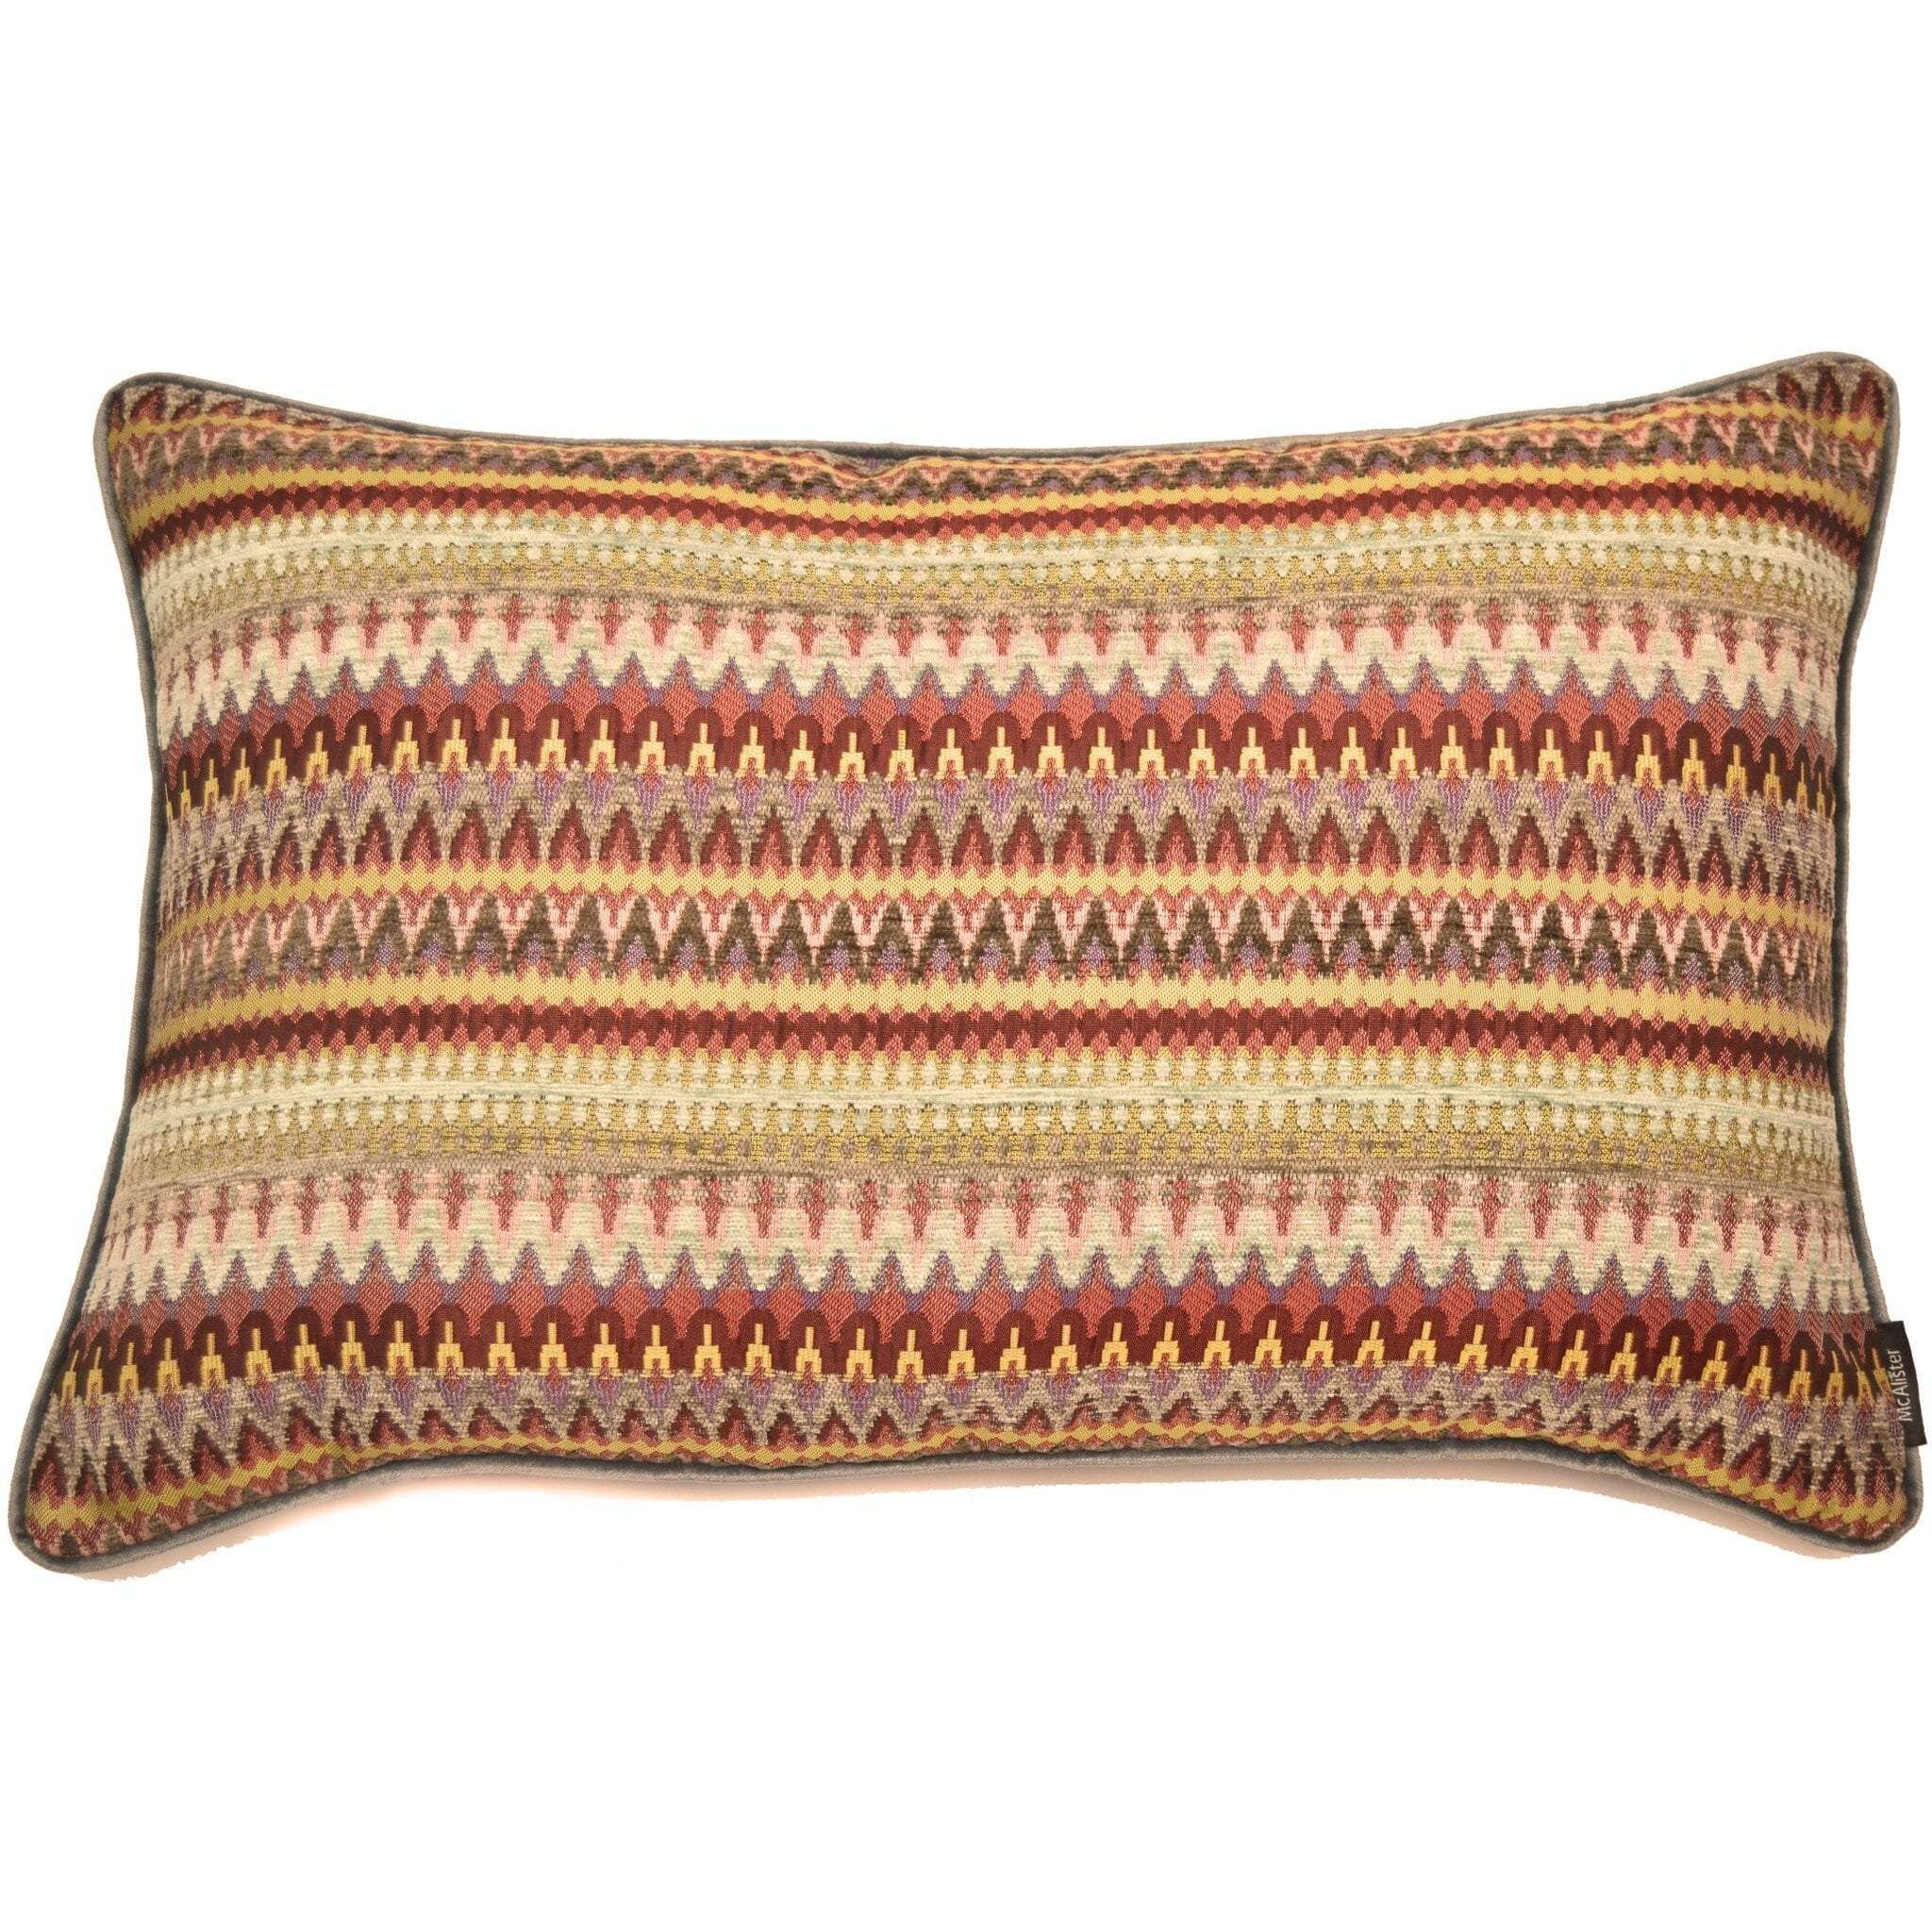 McAlister Textiles Curitiba Aztec Red + Purple Aztec Cushion Cushions and Covers Cover Only 50cm x 30cm